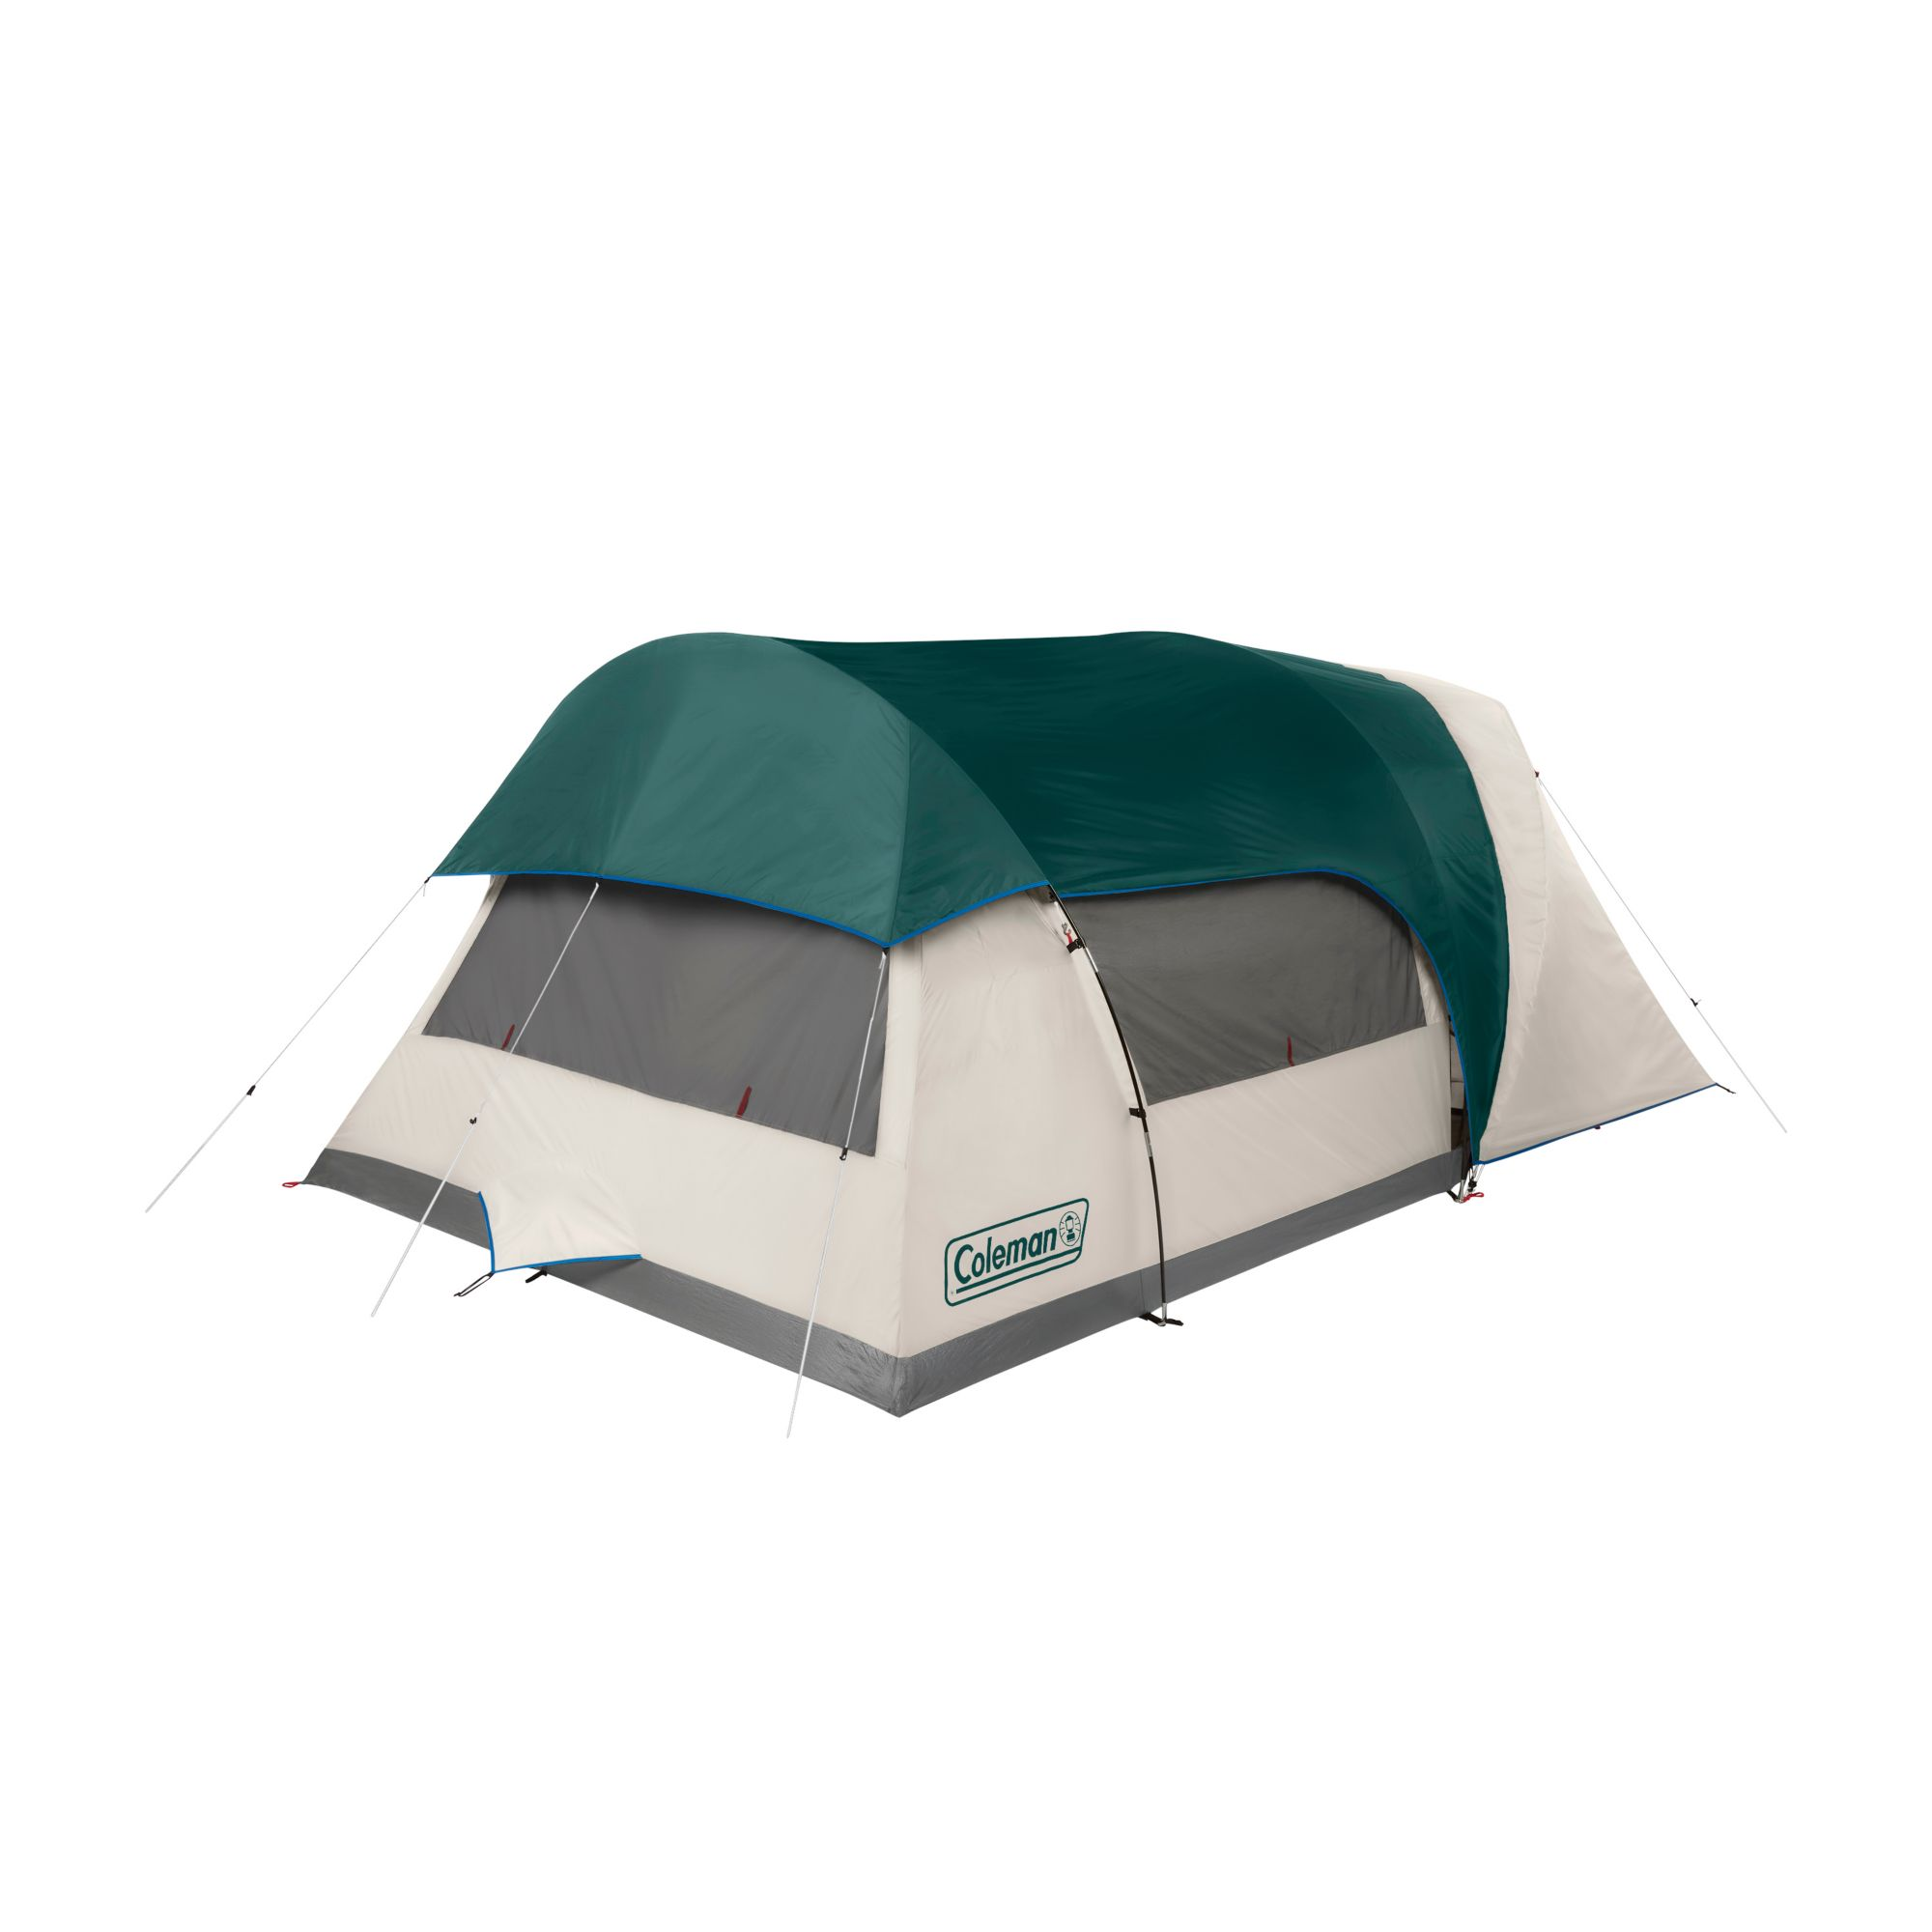 6 Person Cabin Camping Tent With Enclosed Weatherproof Screen Room Coleman